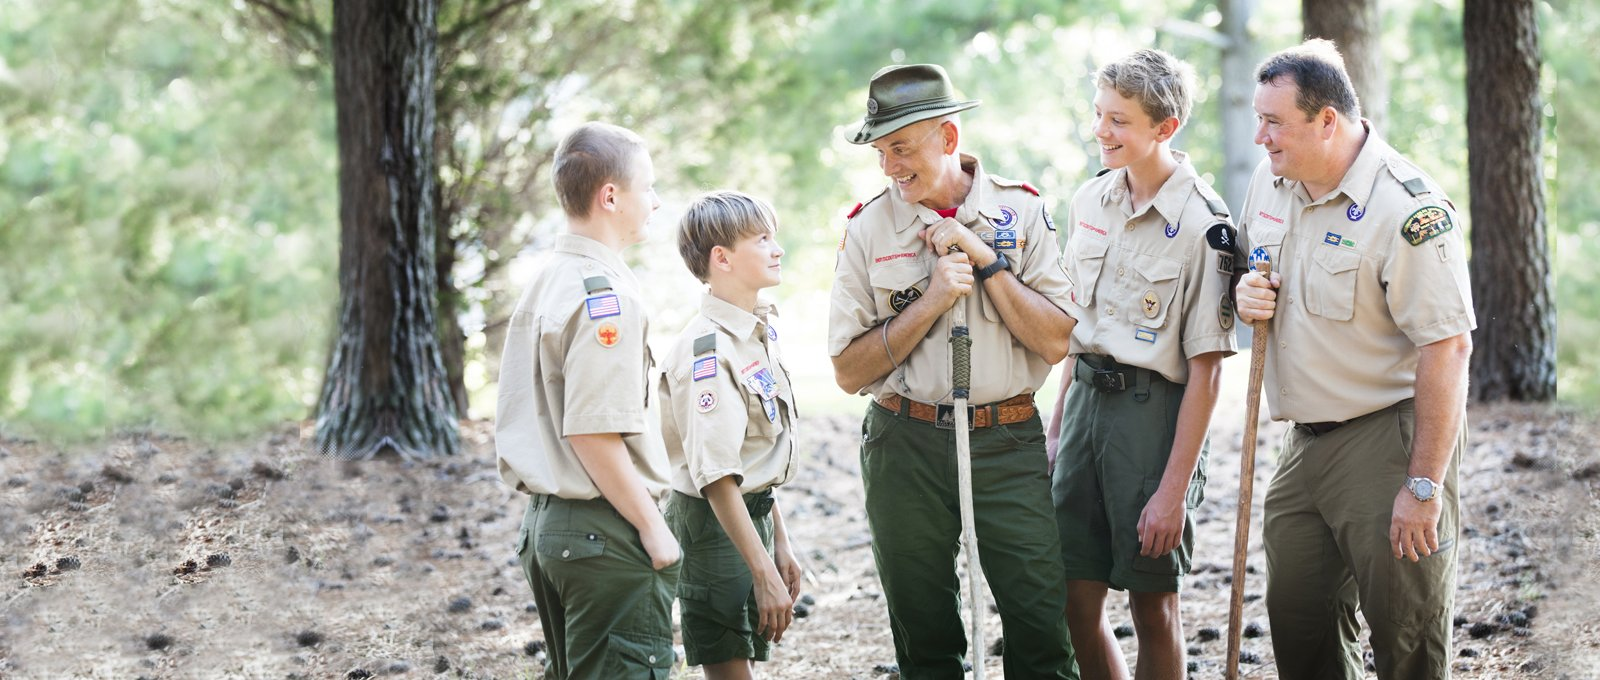 scout leaders talking to two scouts while on a hike